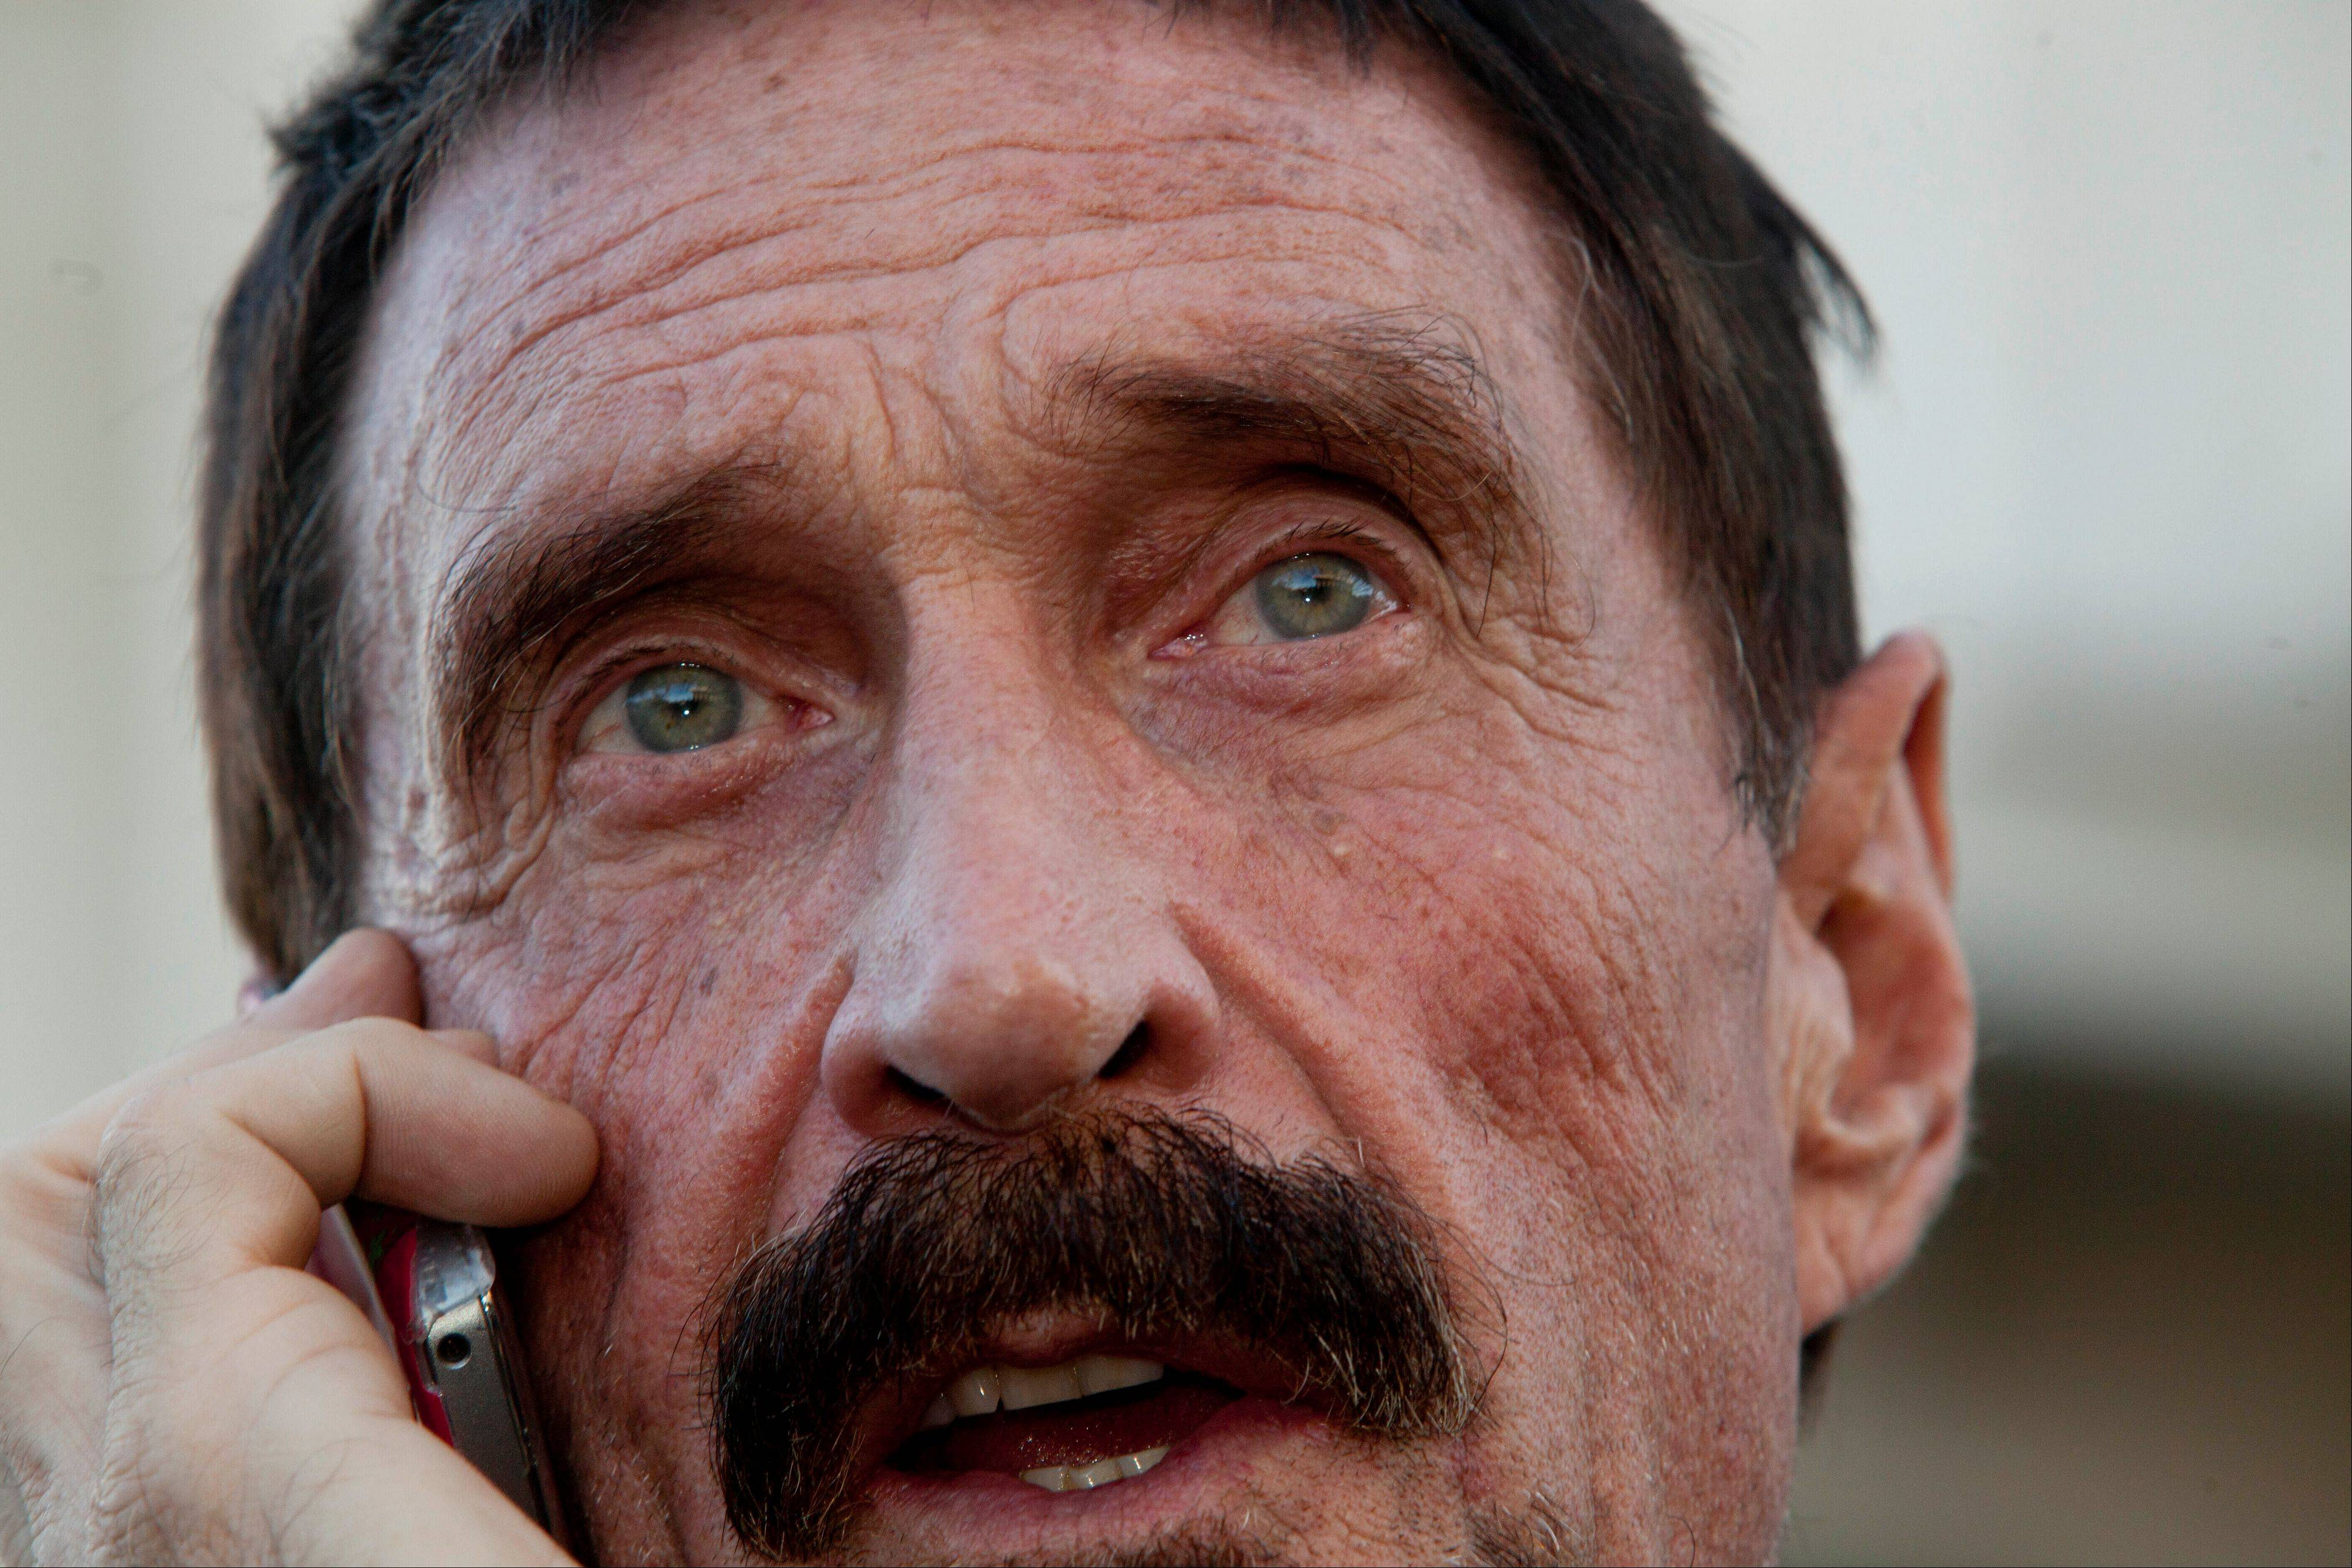 A lawyer for software company founder John McAfee says he has been denied political asylum in Guatemala, paving the way for his deportation to Belize.